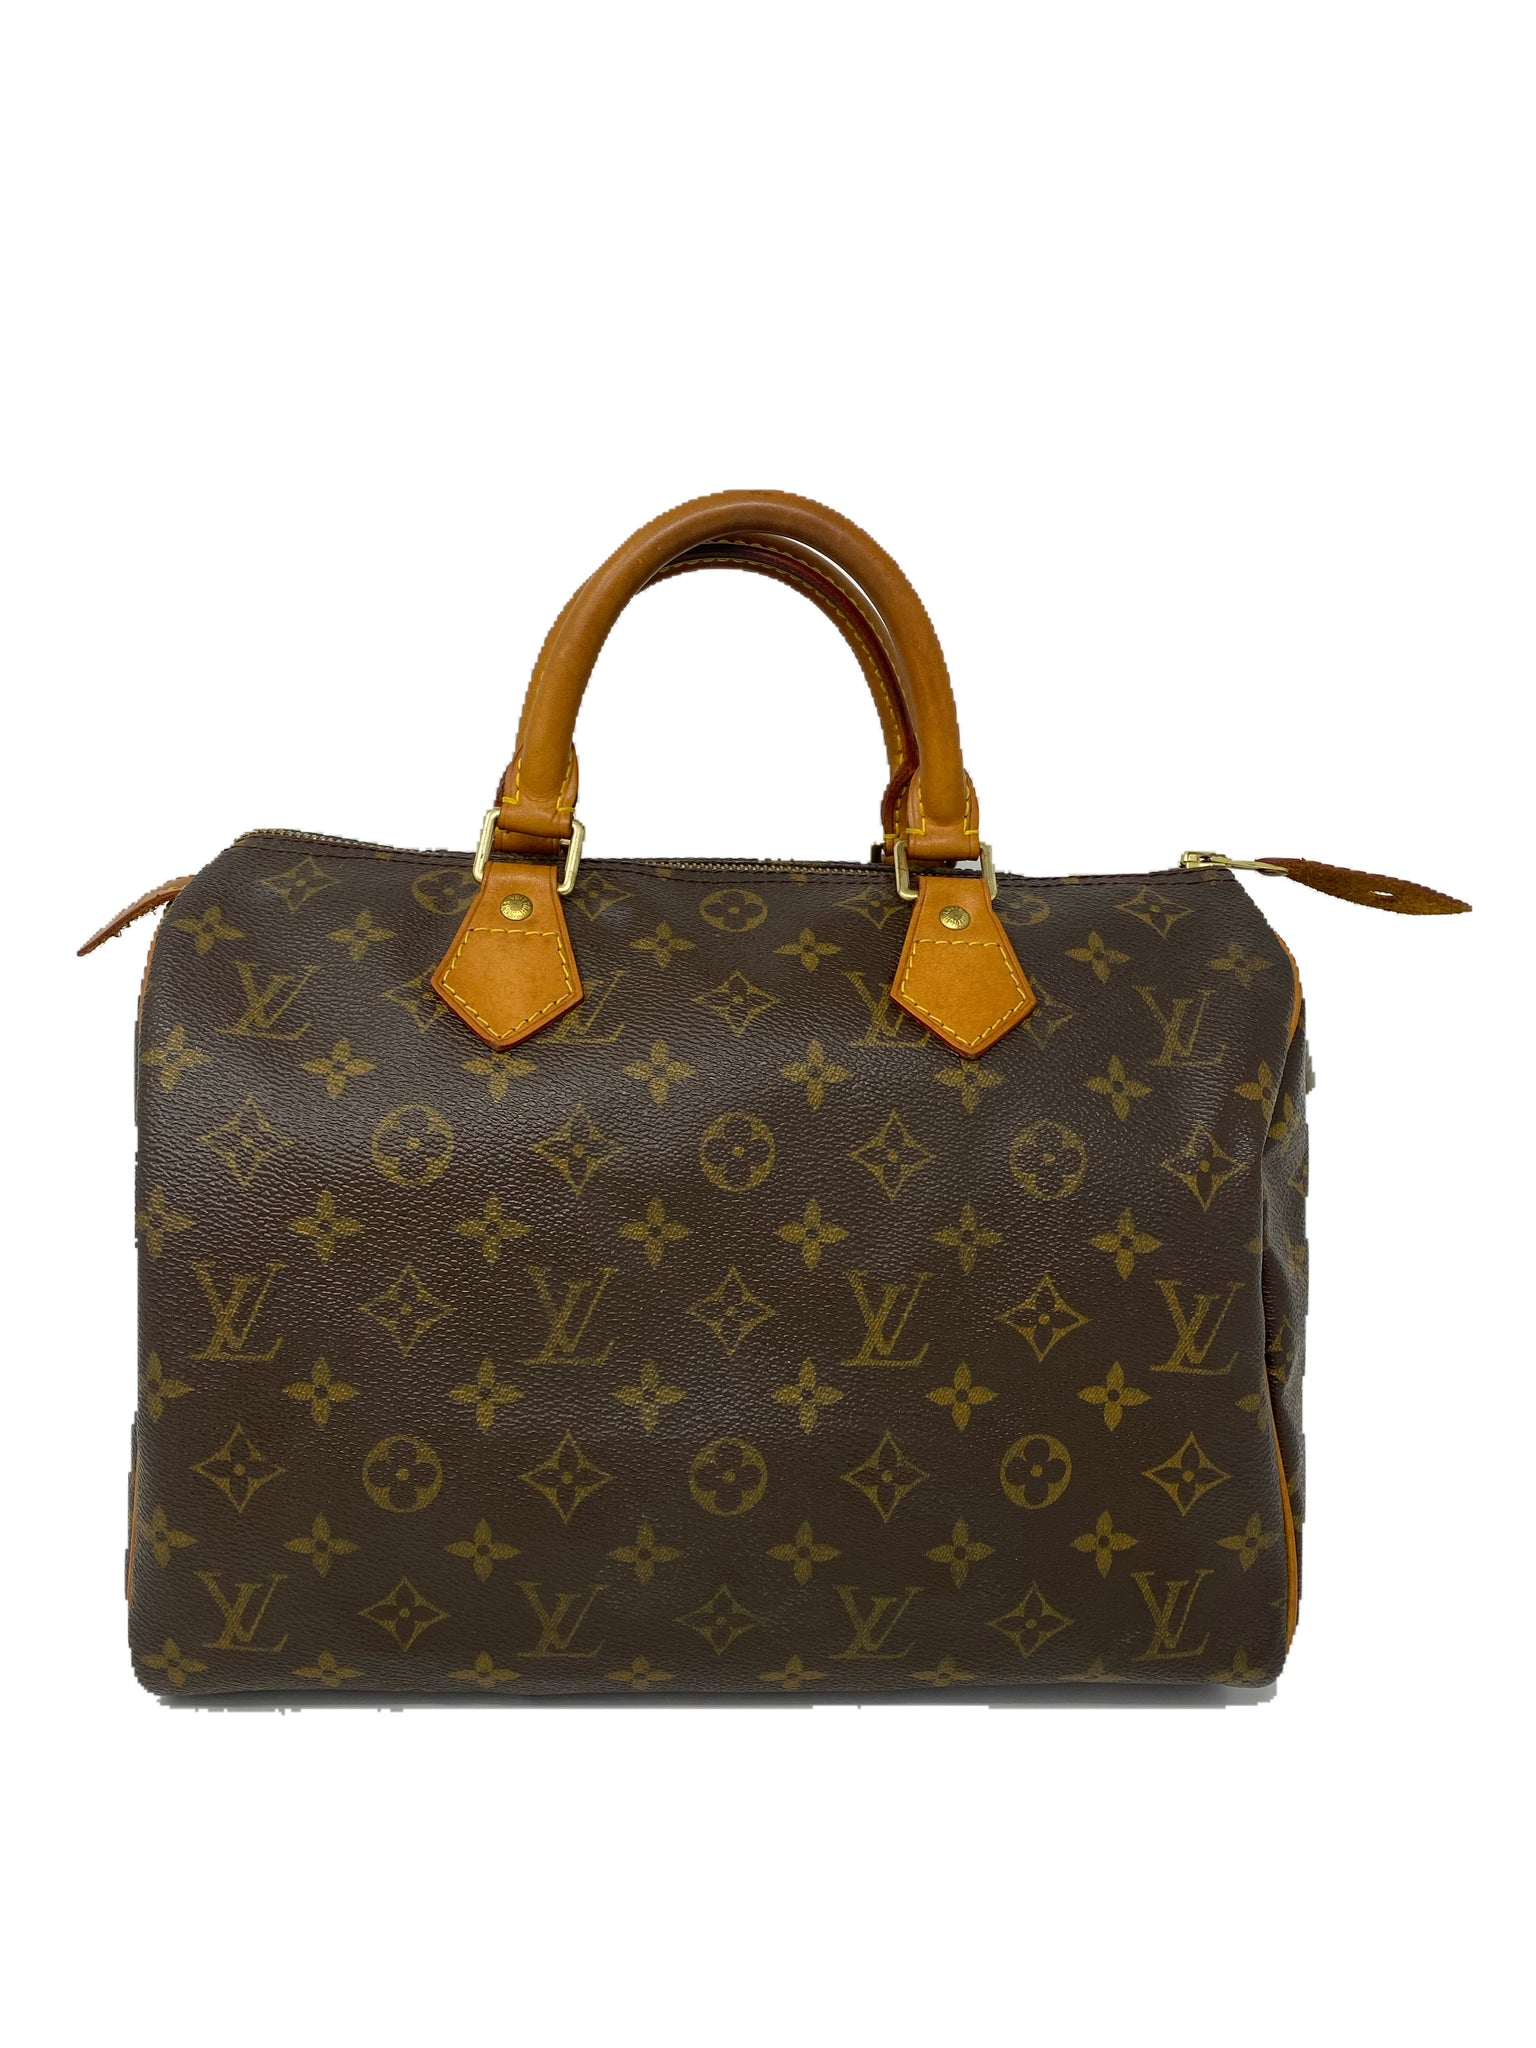 Louis Vuitton Speedy 30 Monogram Canvas Handbag